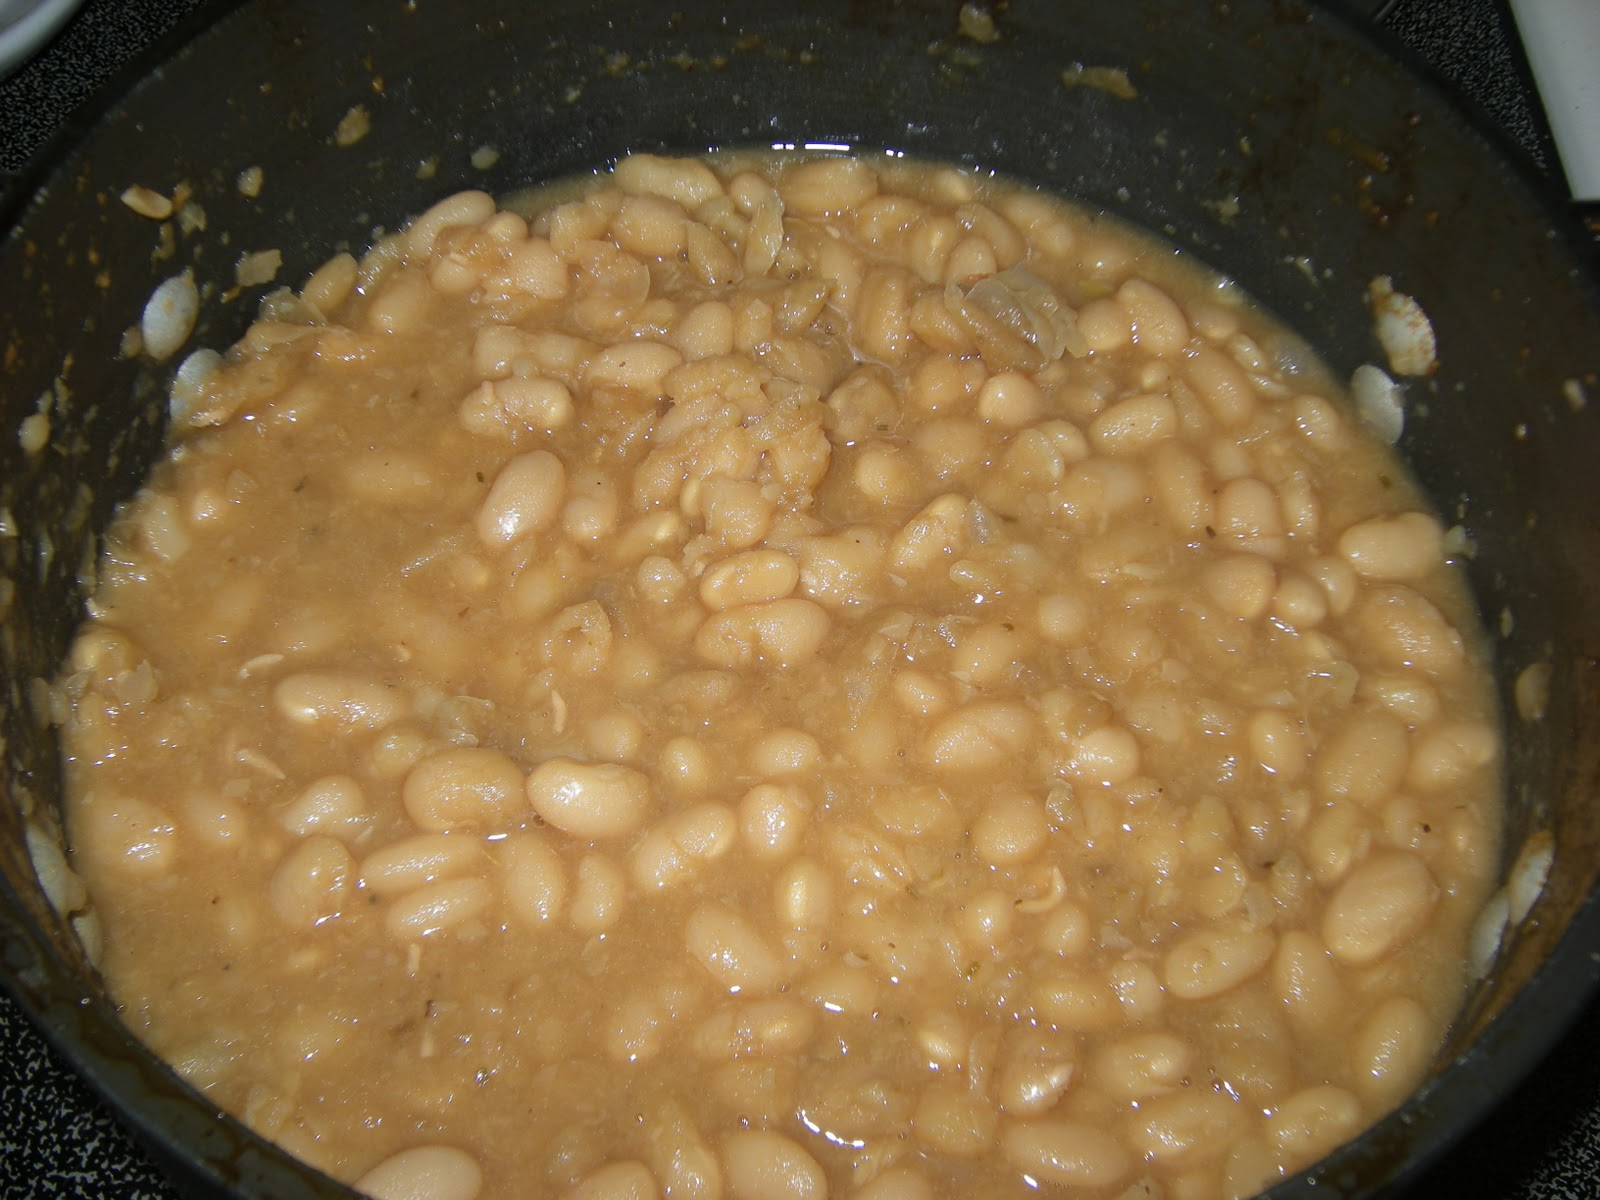 the great mom pop culture escape: Beer-Baked White Beans